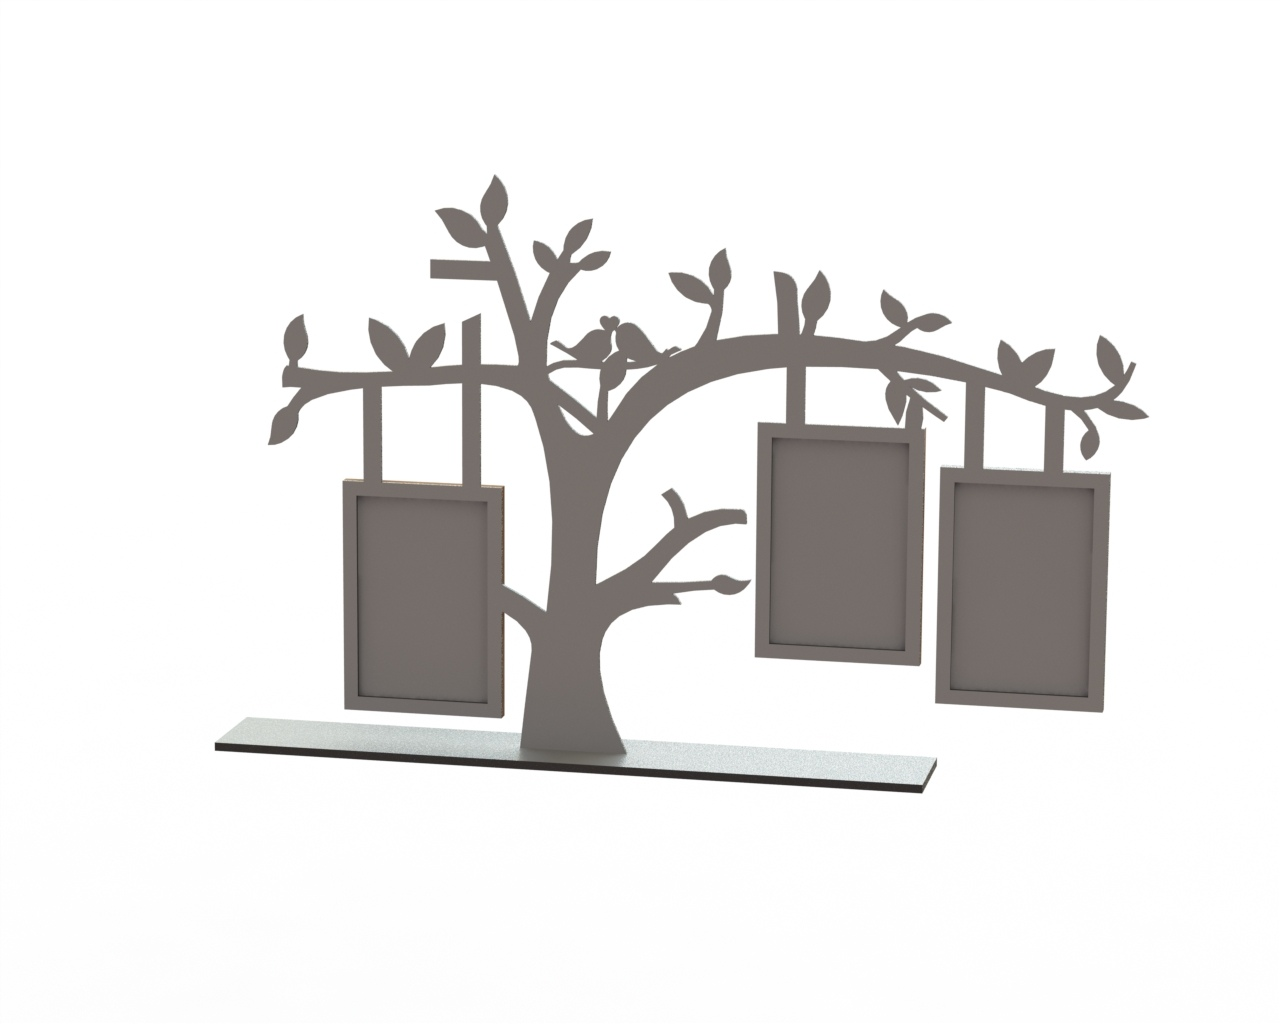 Tree Frame Laser Cut Free Vector cdr Download - 3axis.co